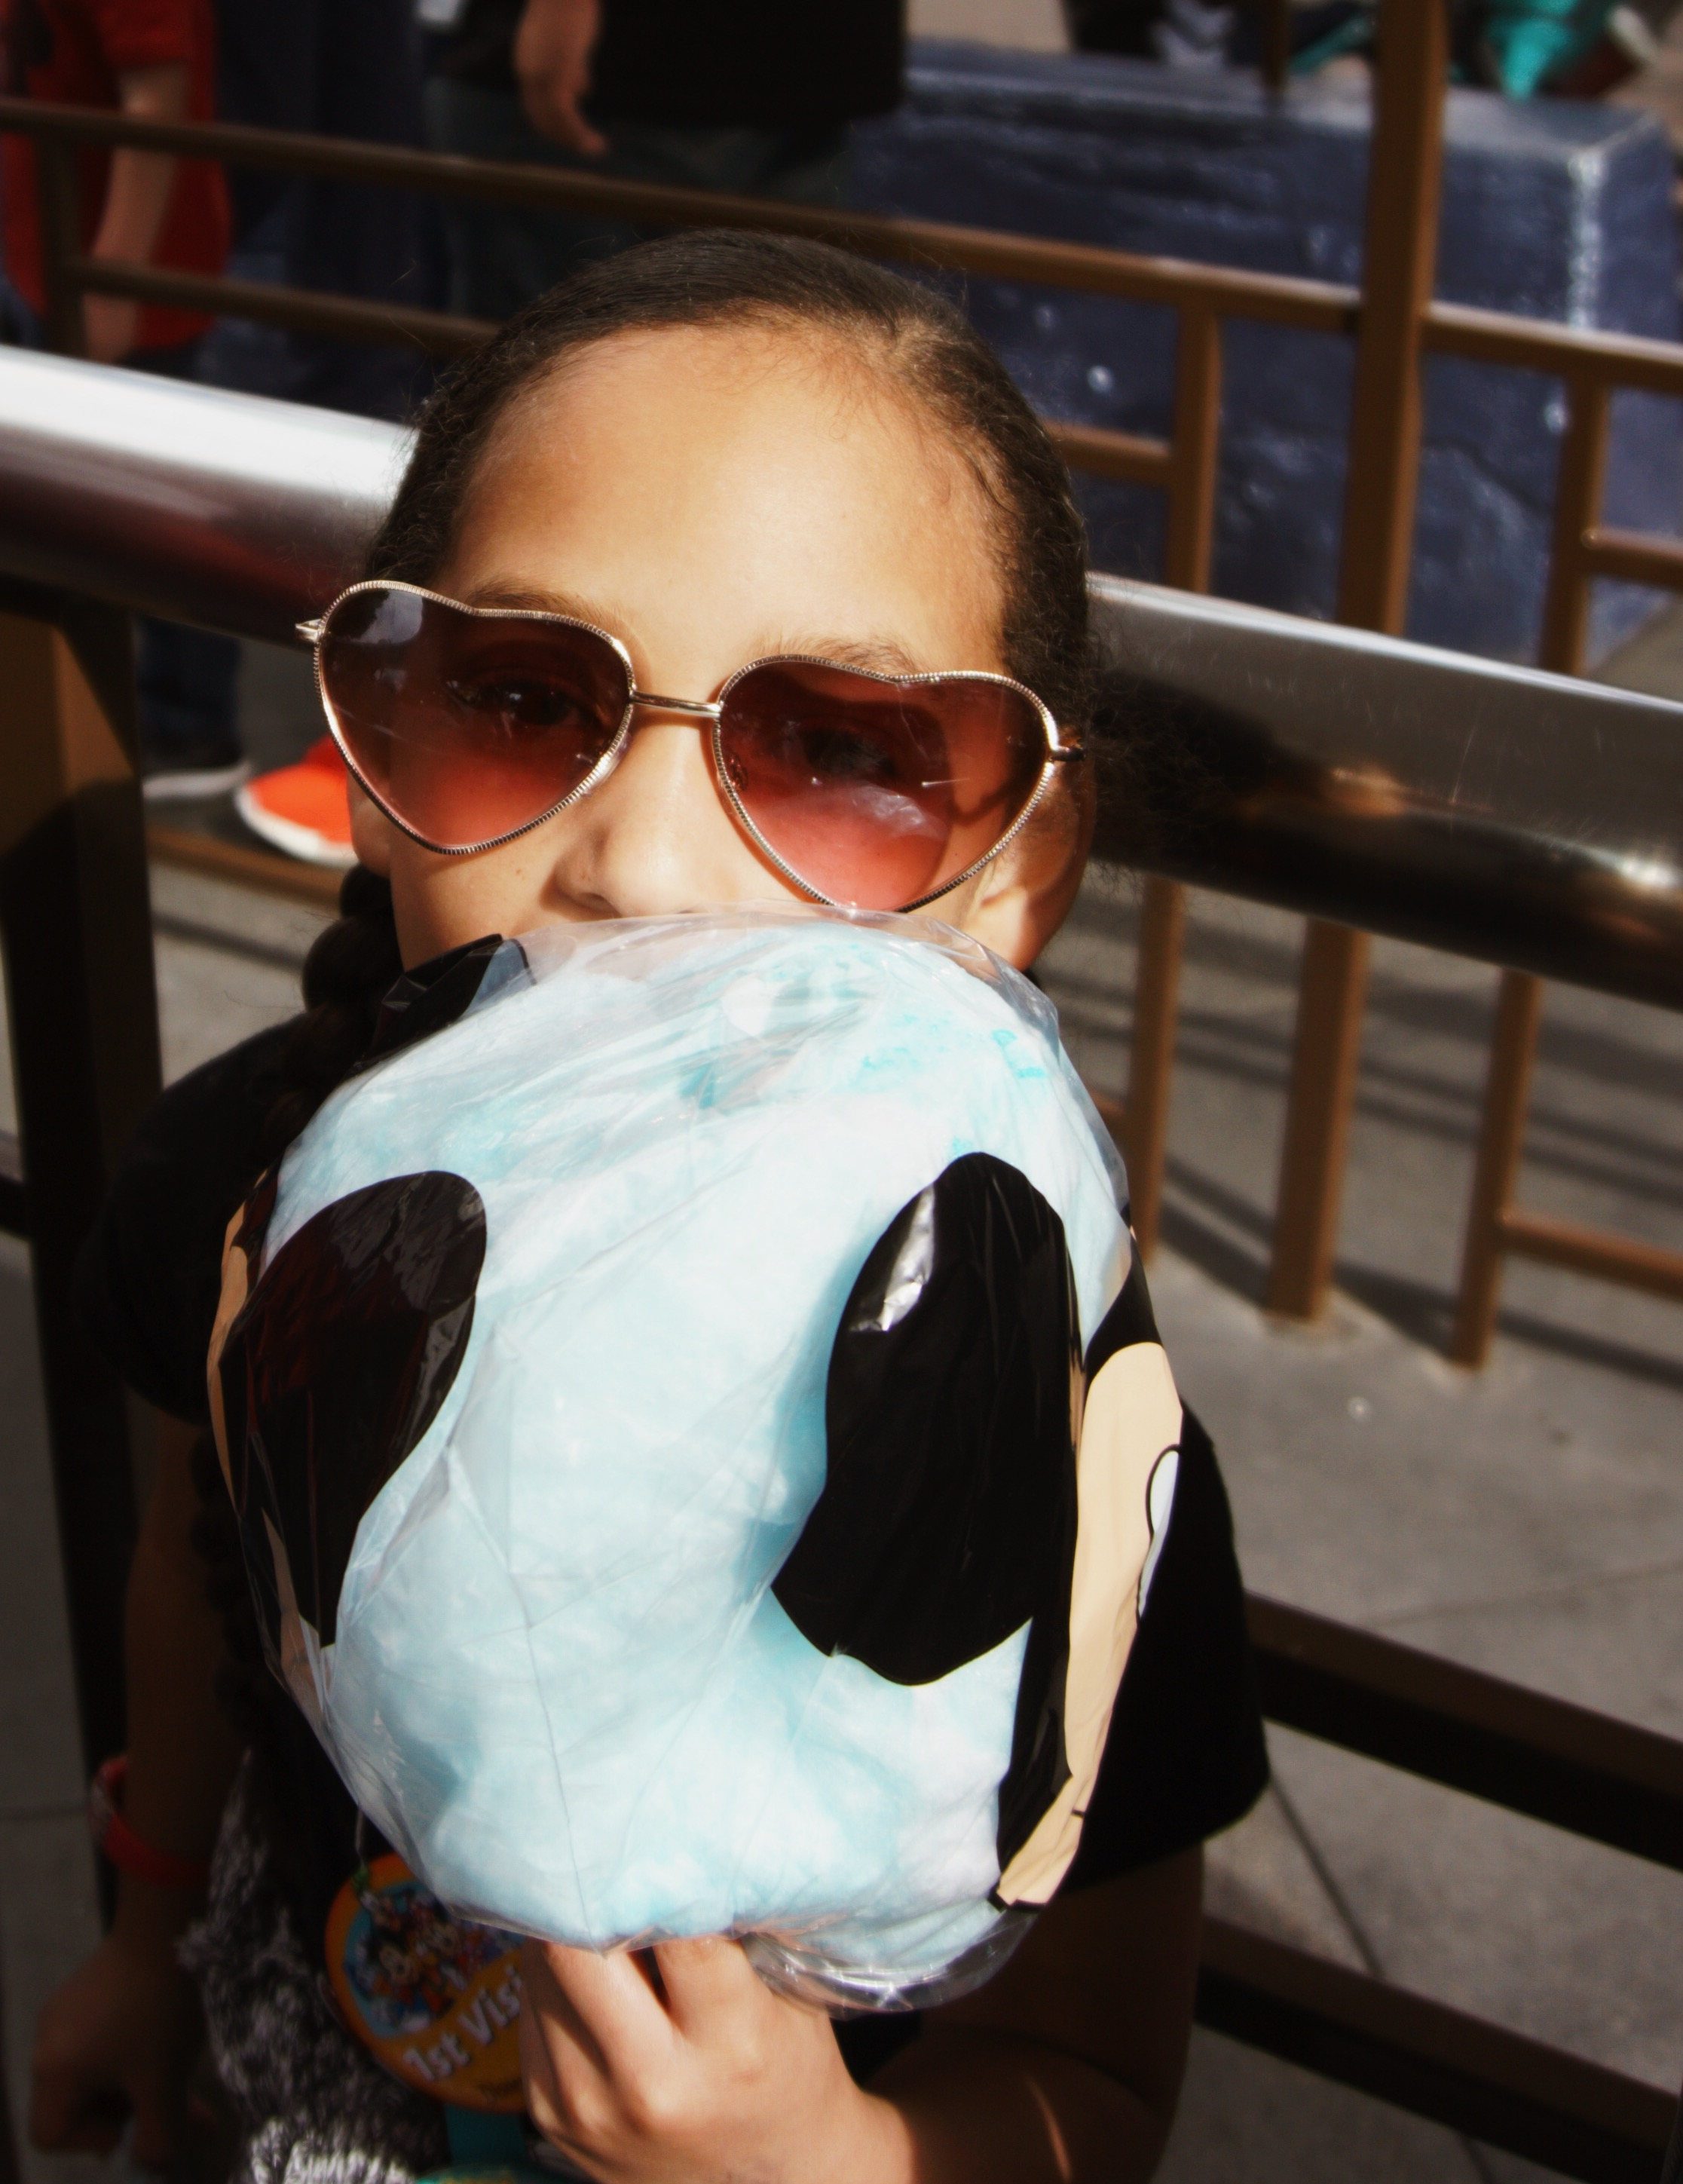 sunglasses and cotton candy